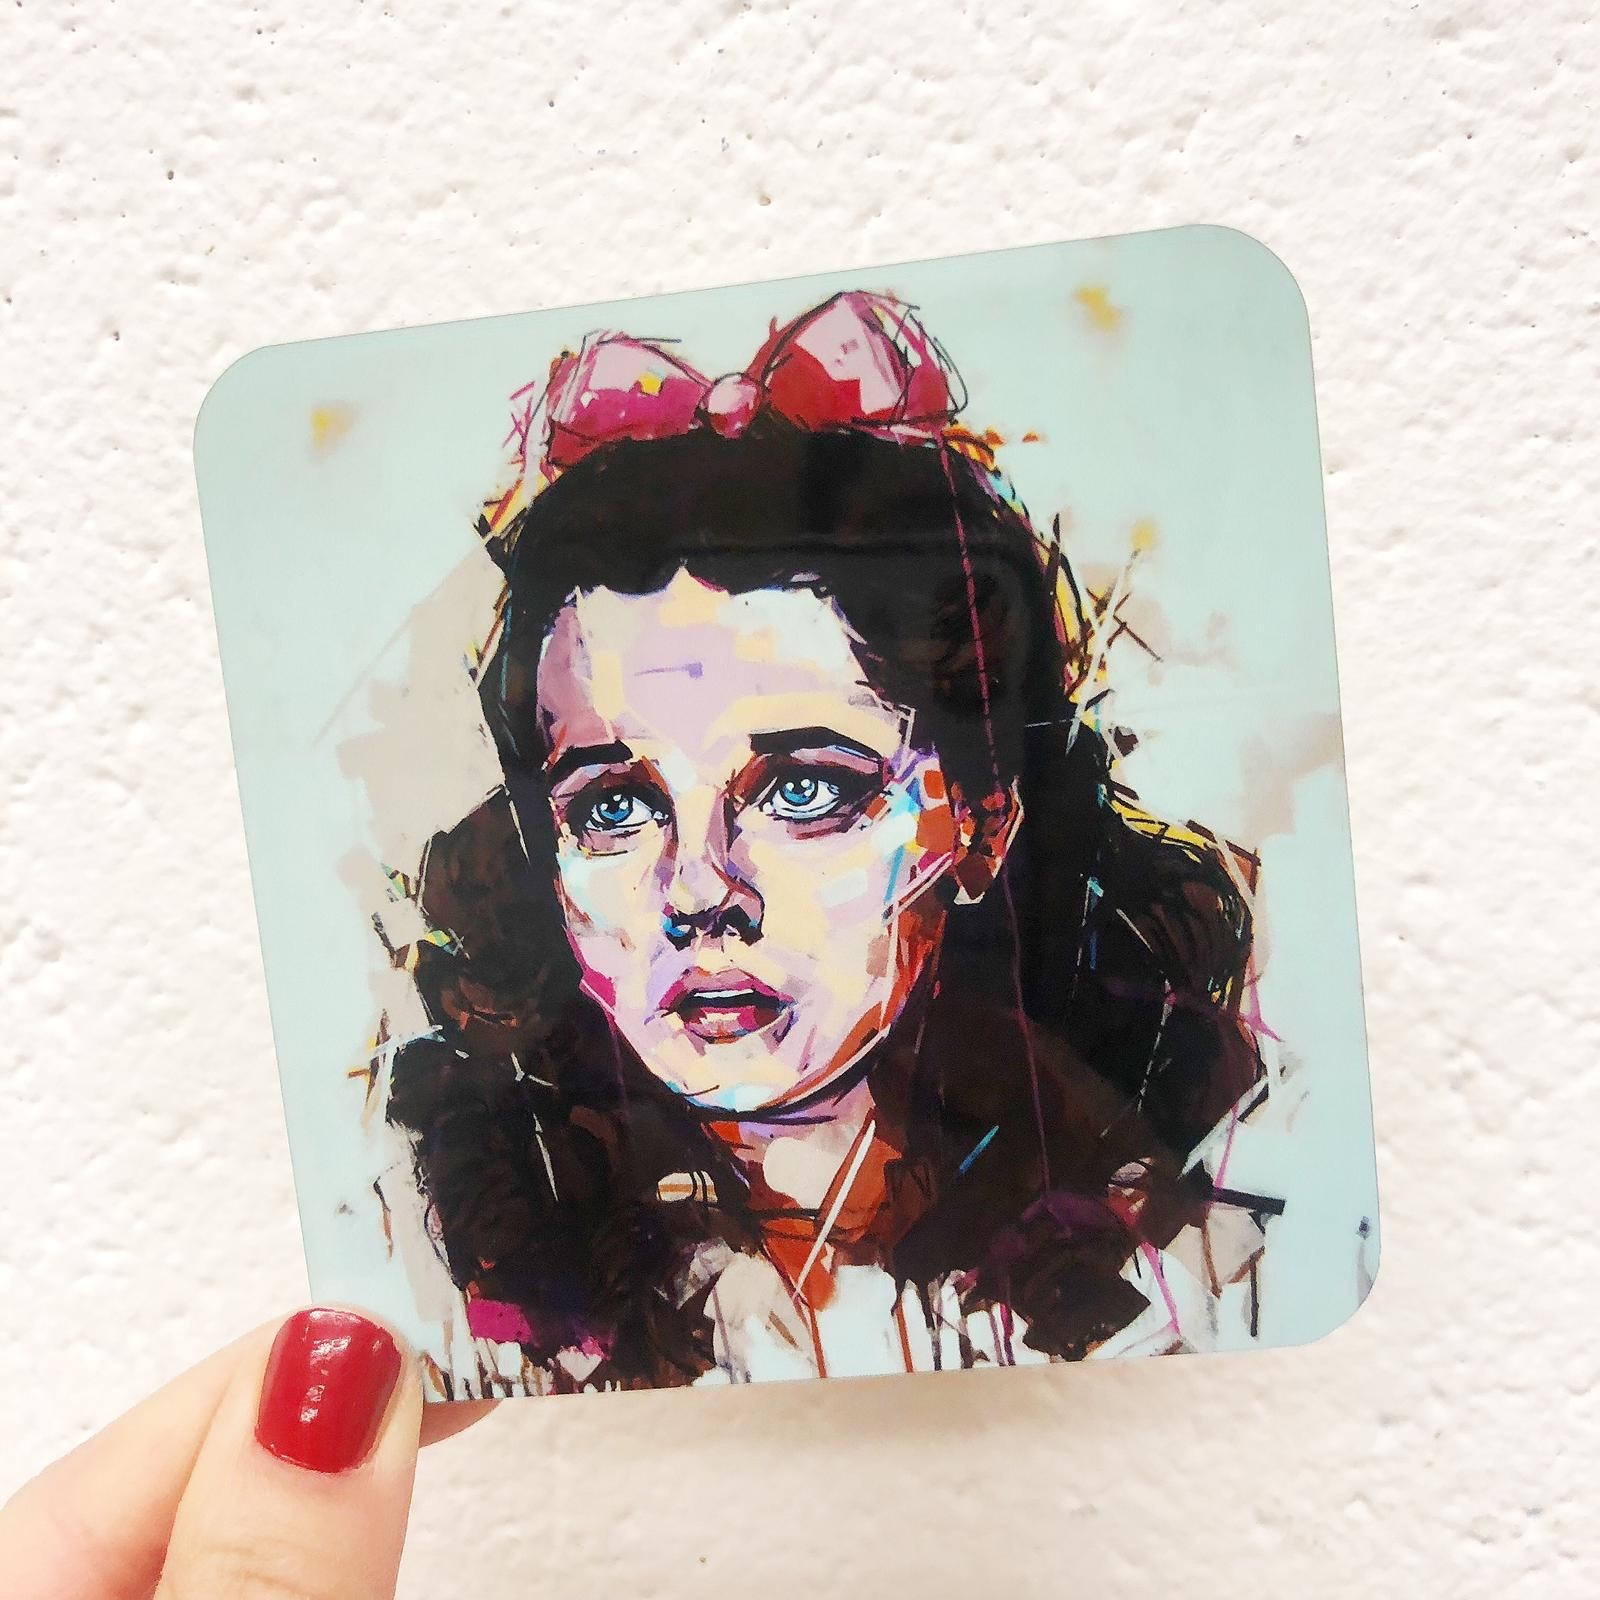 Personalised photo coasters: 'Dorothy' Judy Garland by Laura Selevos – buy on ArtWOW